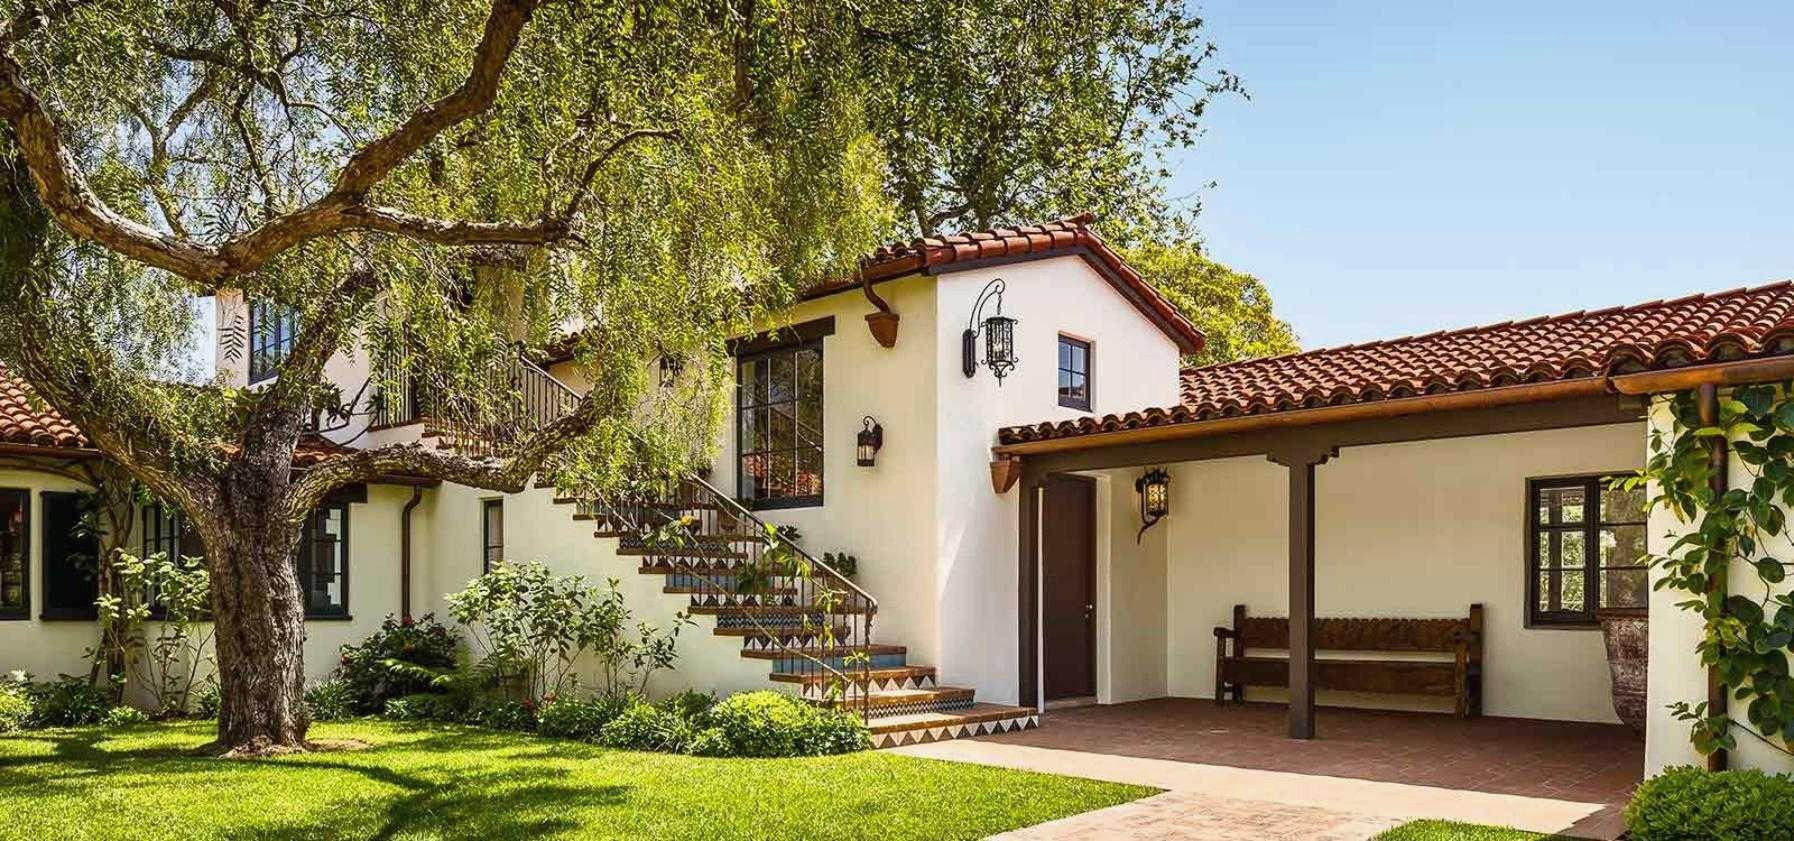 Small Spanish Style Homes Plans Awesome Tiny Spanish Style House Plans Small Hacienda Homes Floor Www Hacienda Style Homes Hacienda Style Spanish Style Homes